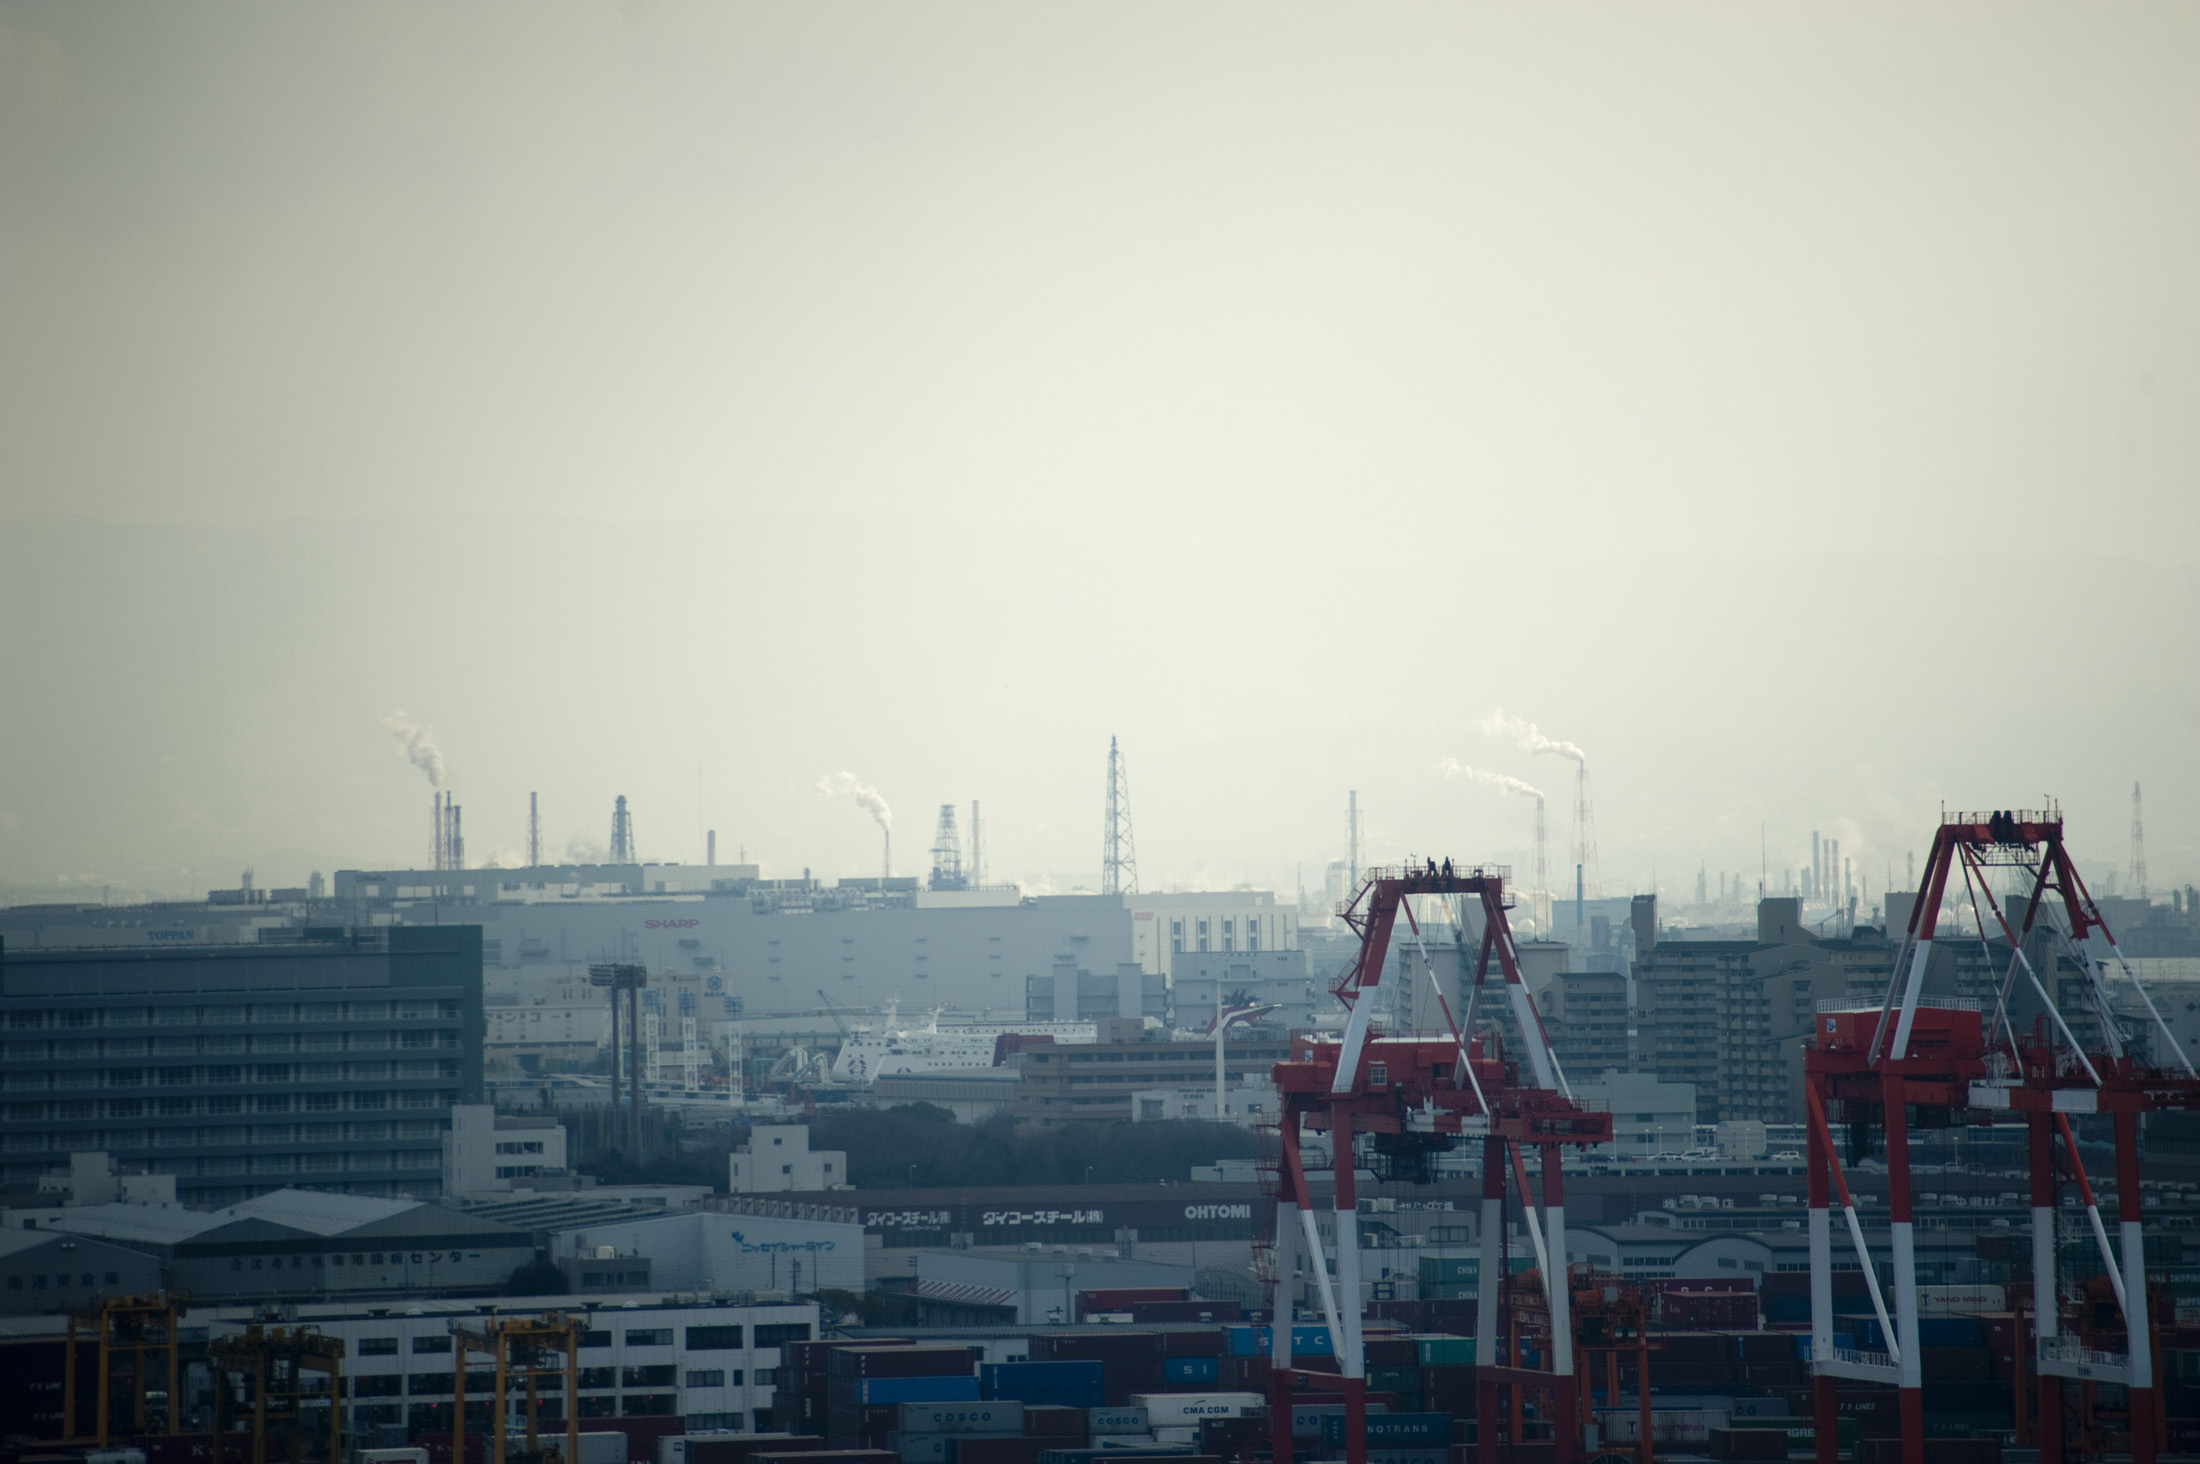 Osaka is Japans industrial and commercial heartland